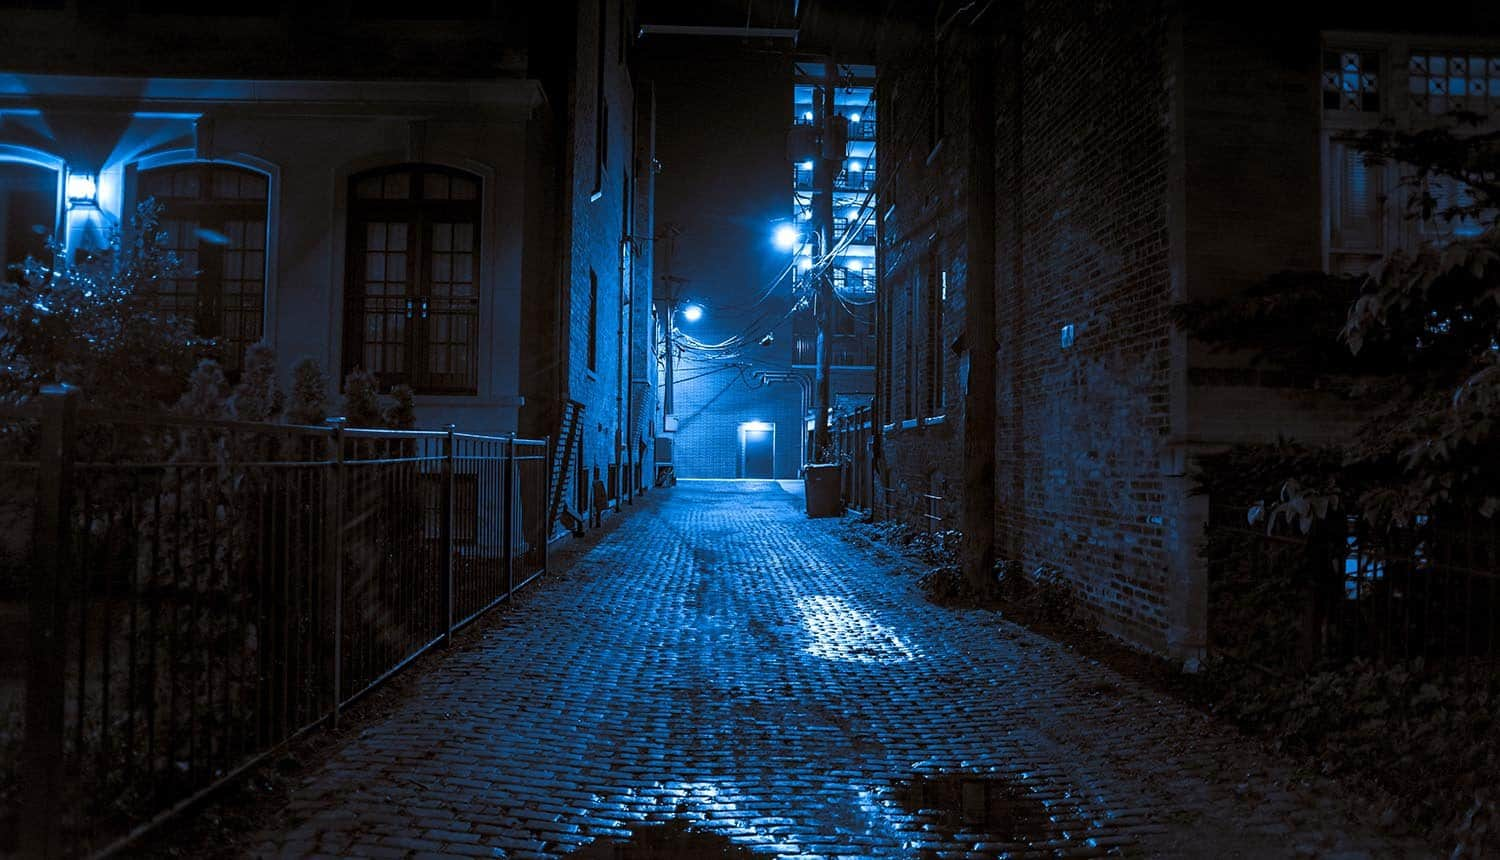 Dark and scary vintage cobblestone brick city alley at night showing darknet market cryptocurrency transactions